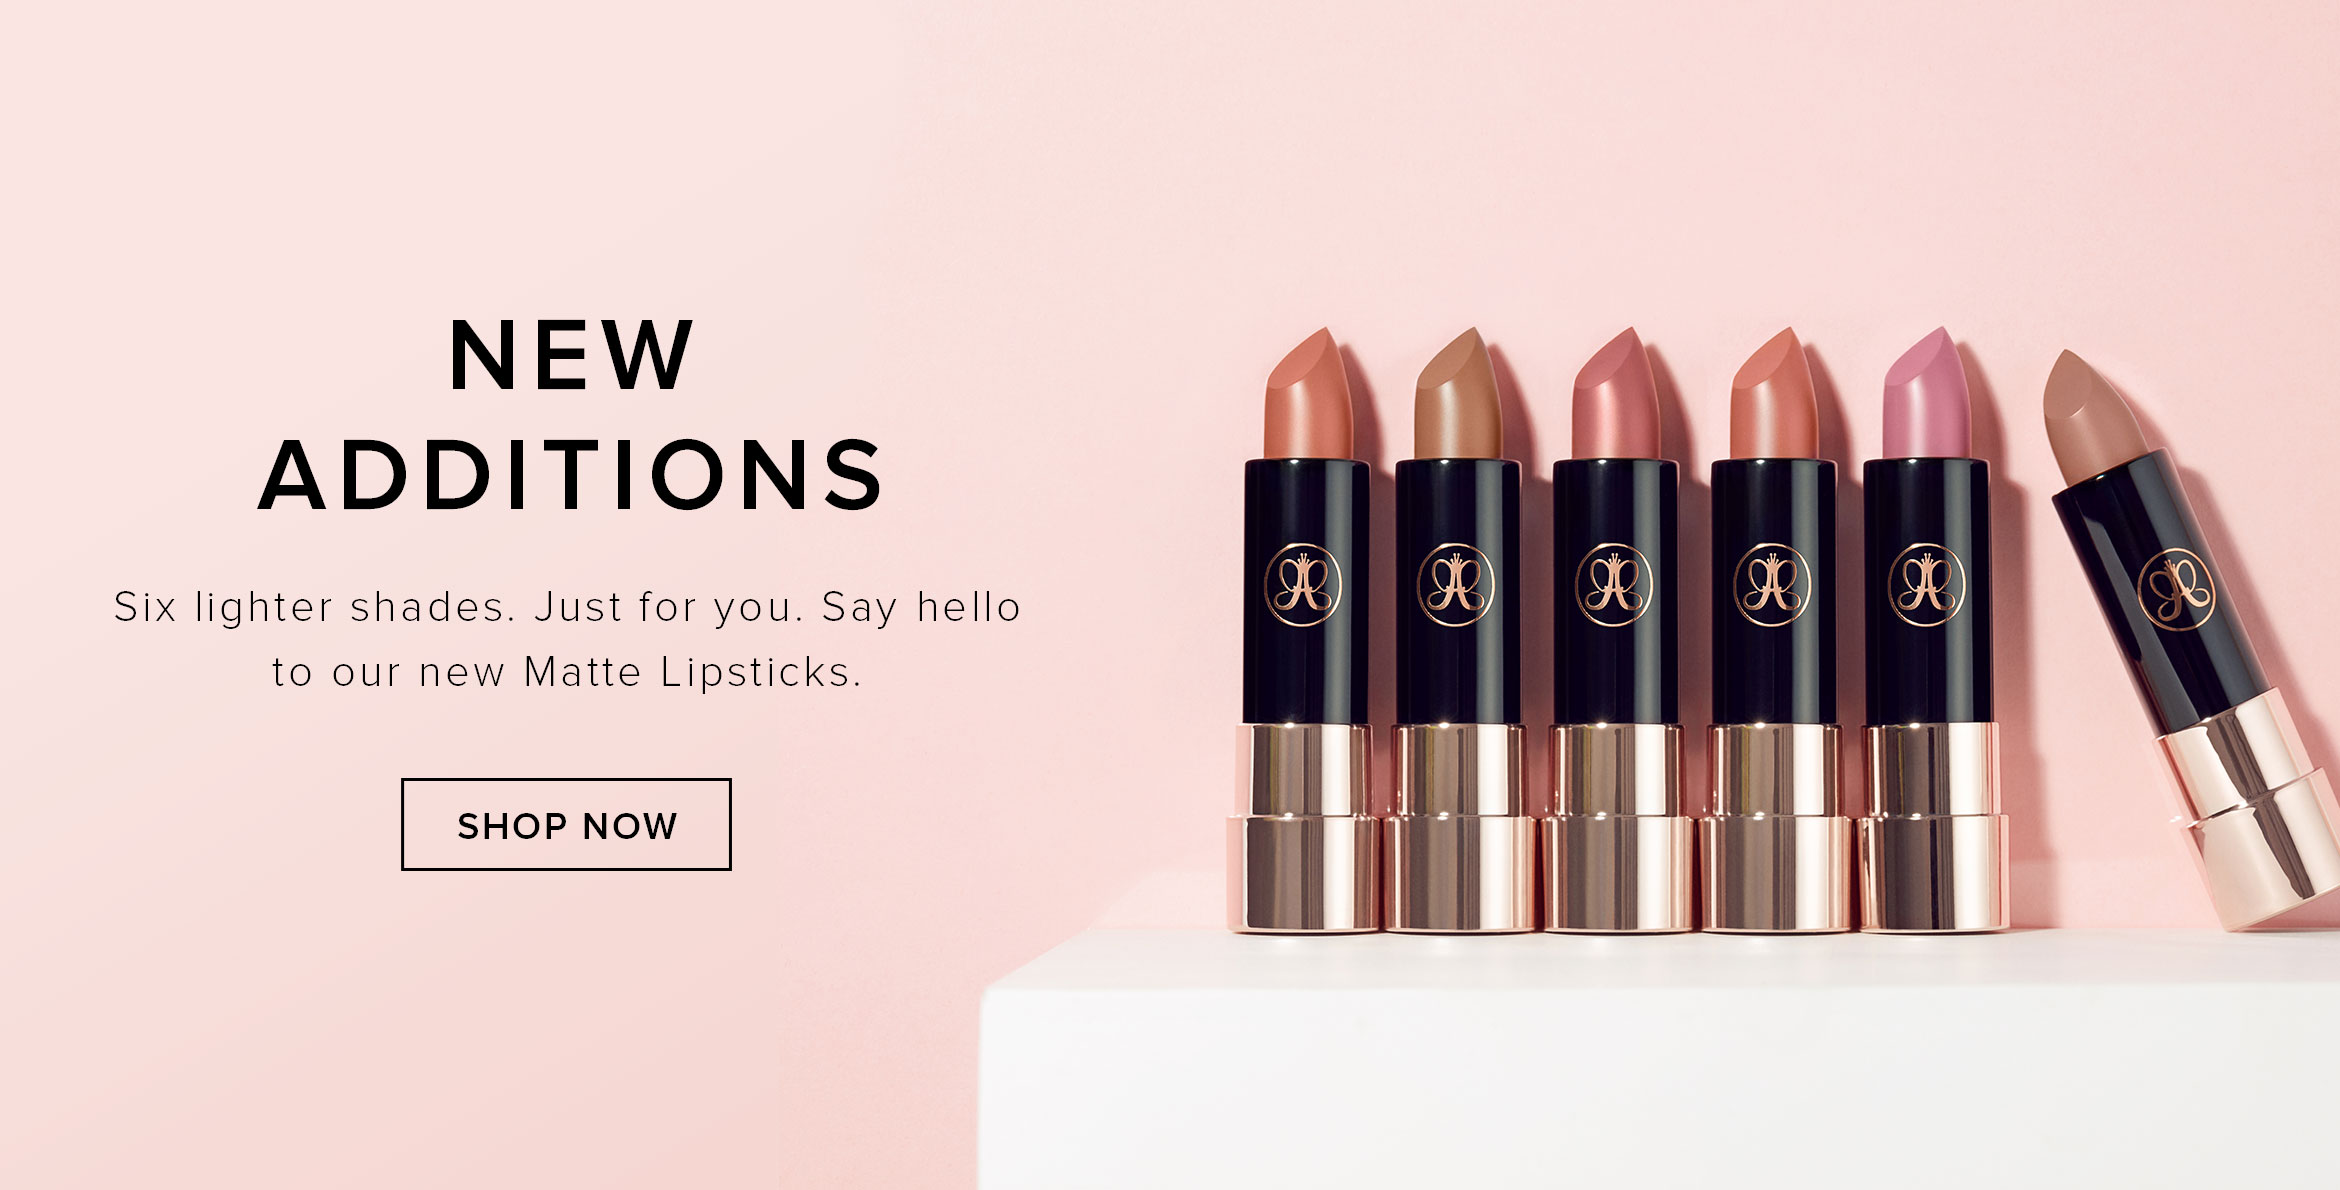 Matte Lipstick - New Shades!